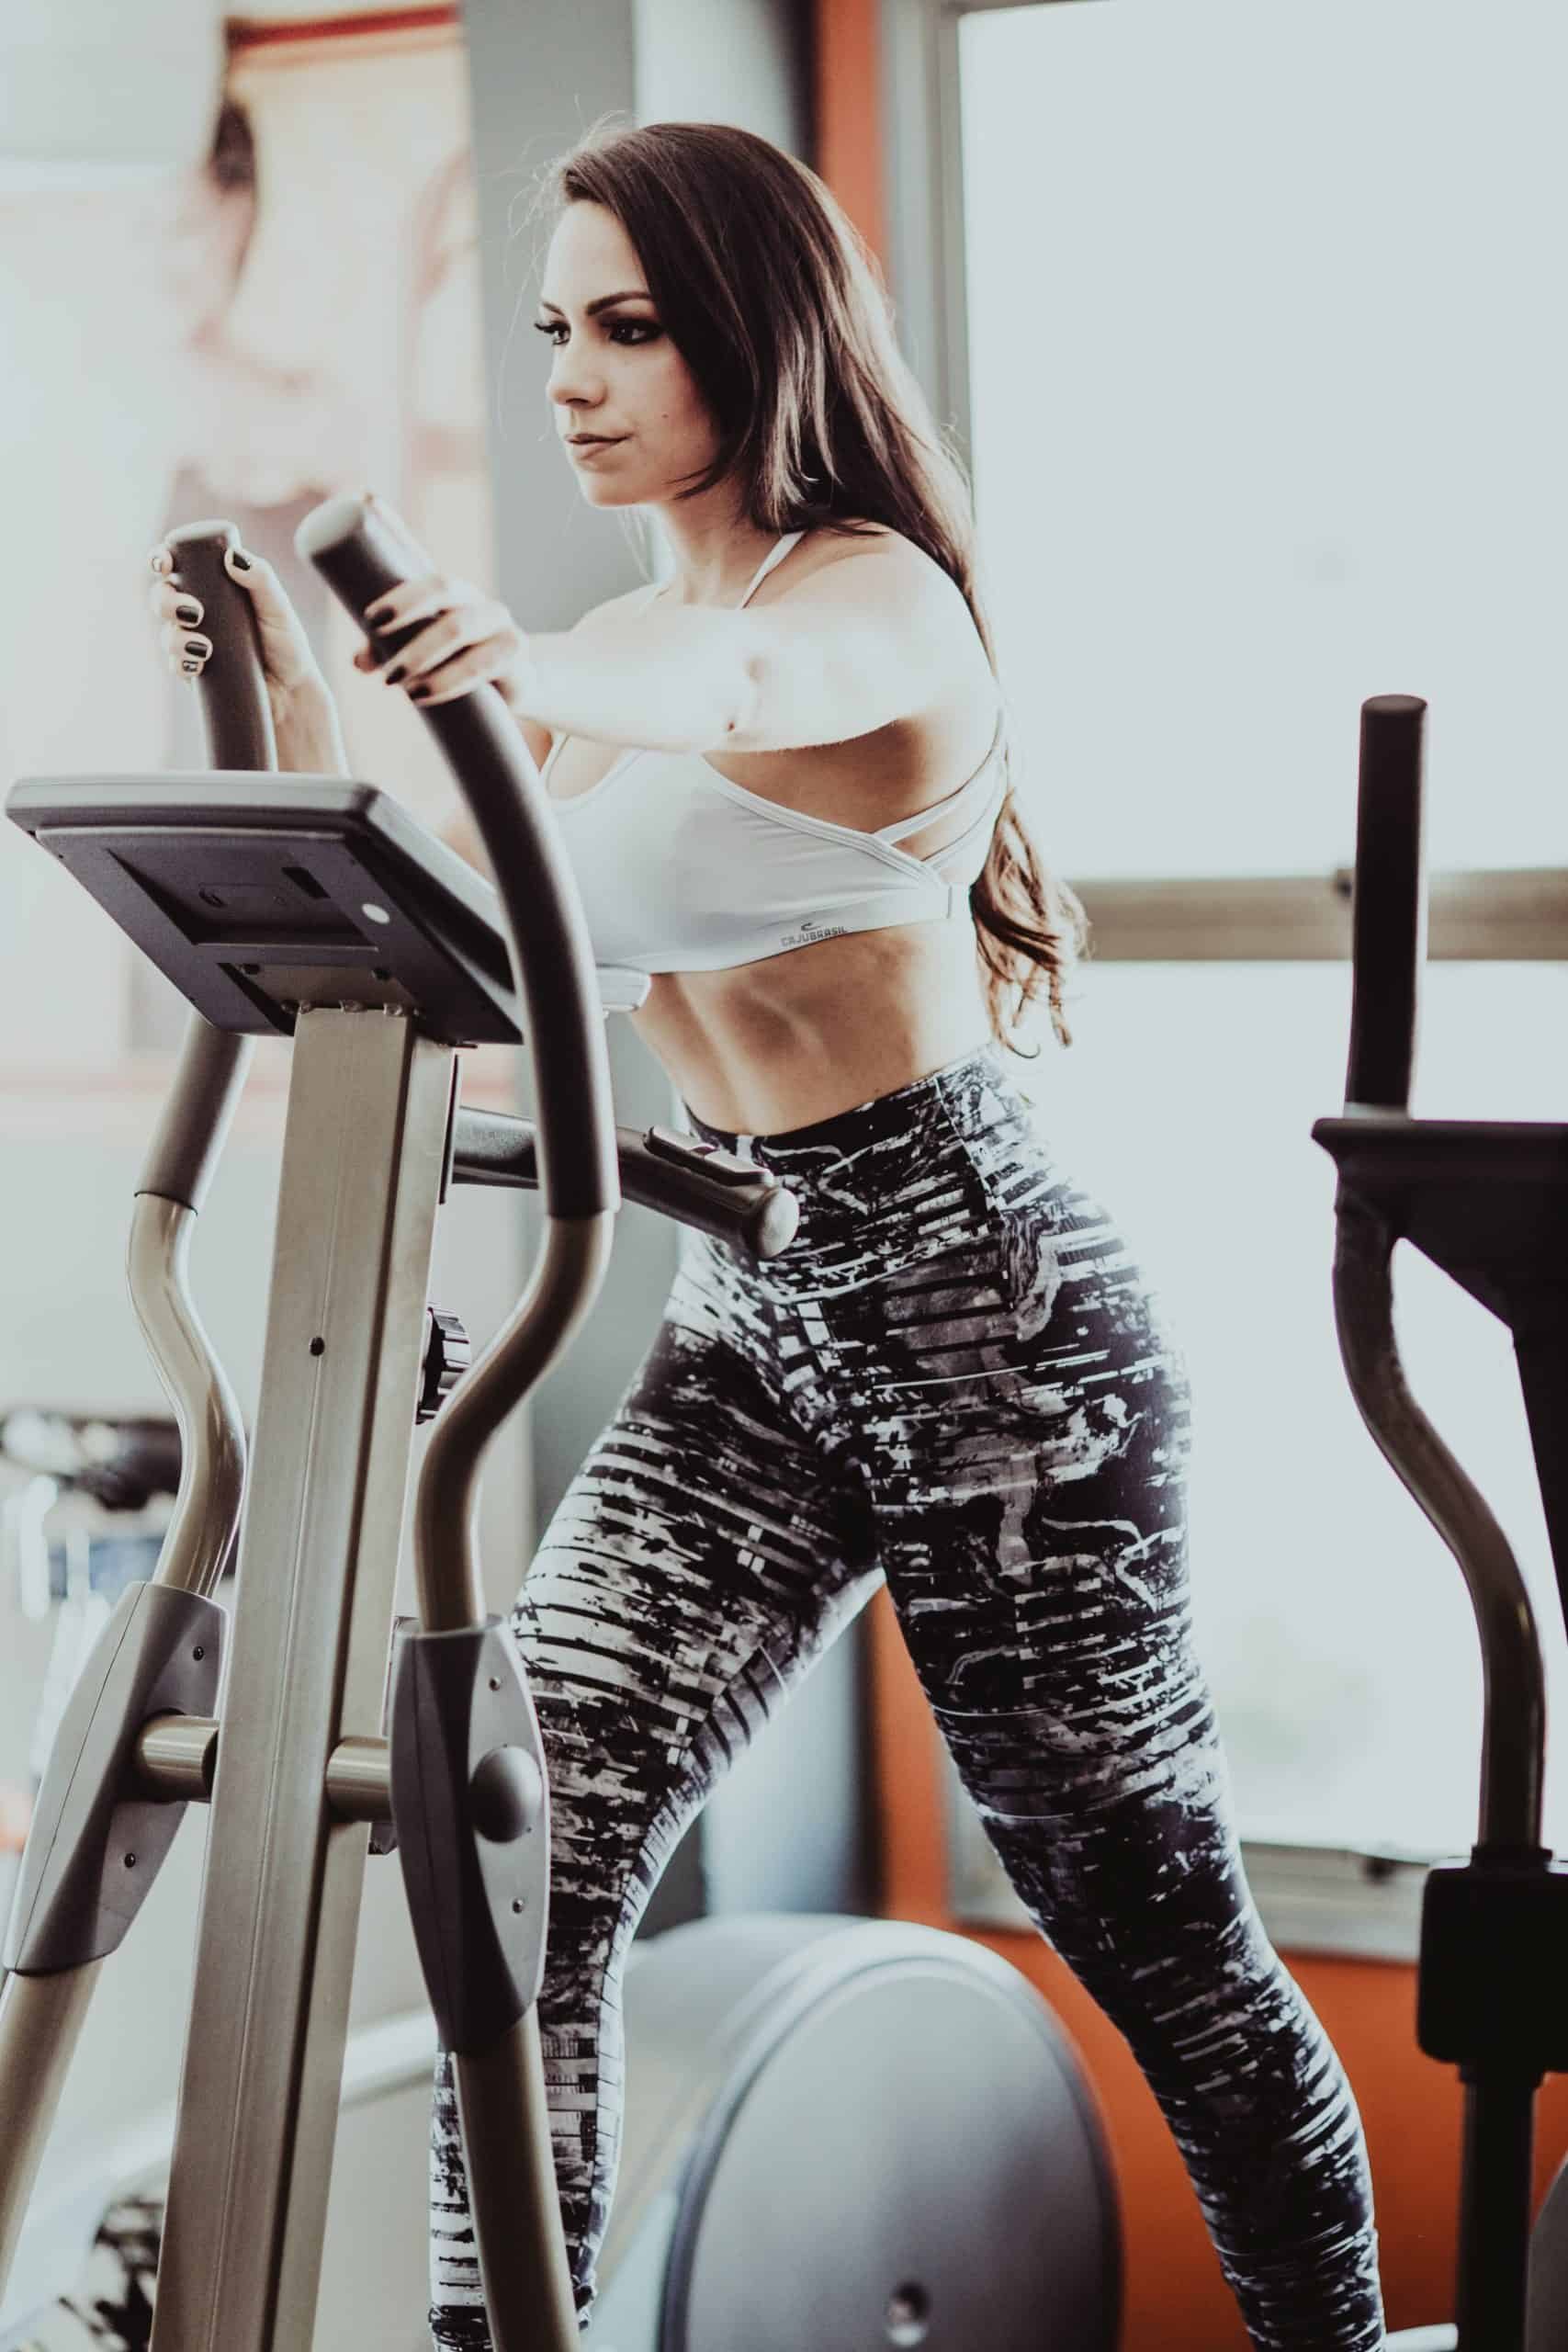 how to build muscle: a picture of a woman on an eliptical